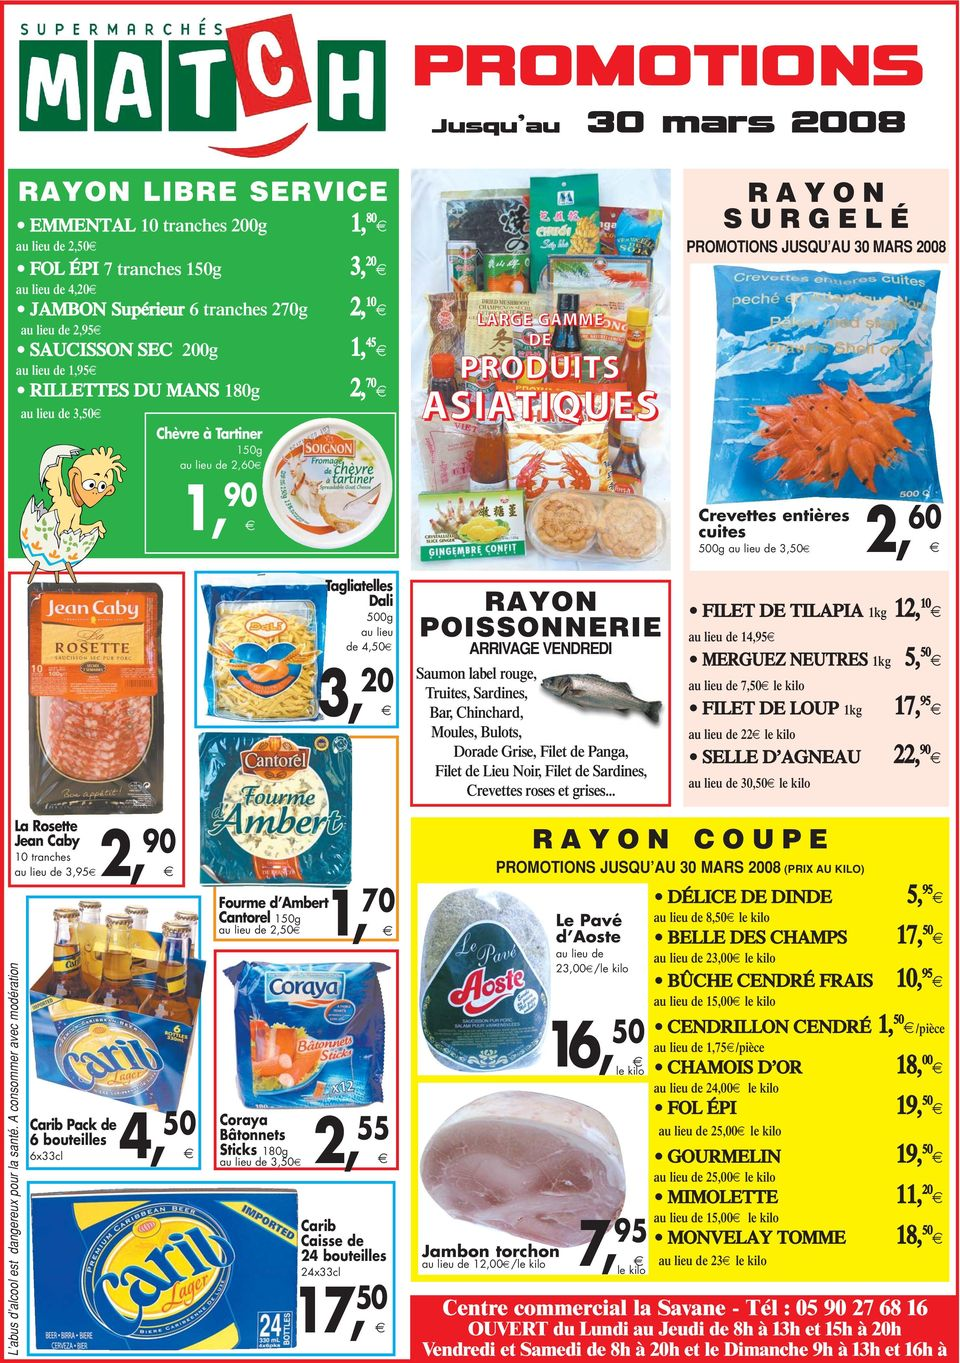 PRODUITS ASIATIQUES RAYON POISSONNERIE ARRIVAGE VENDREDI Saumon label rouge, Truites, Sardines, Bar, Chinchard, Moules, Bulots, Dorade Grise, Filet de Panga, Filet de Lieu Noir, Filet de Sardines,